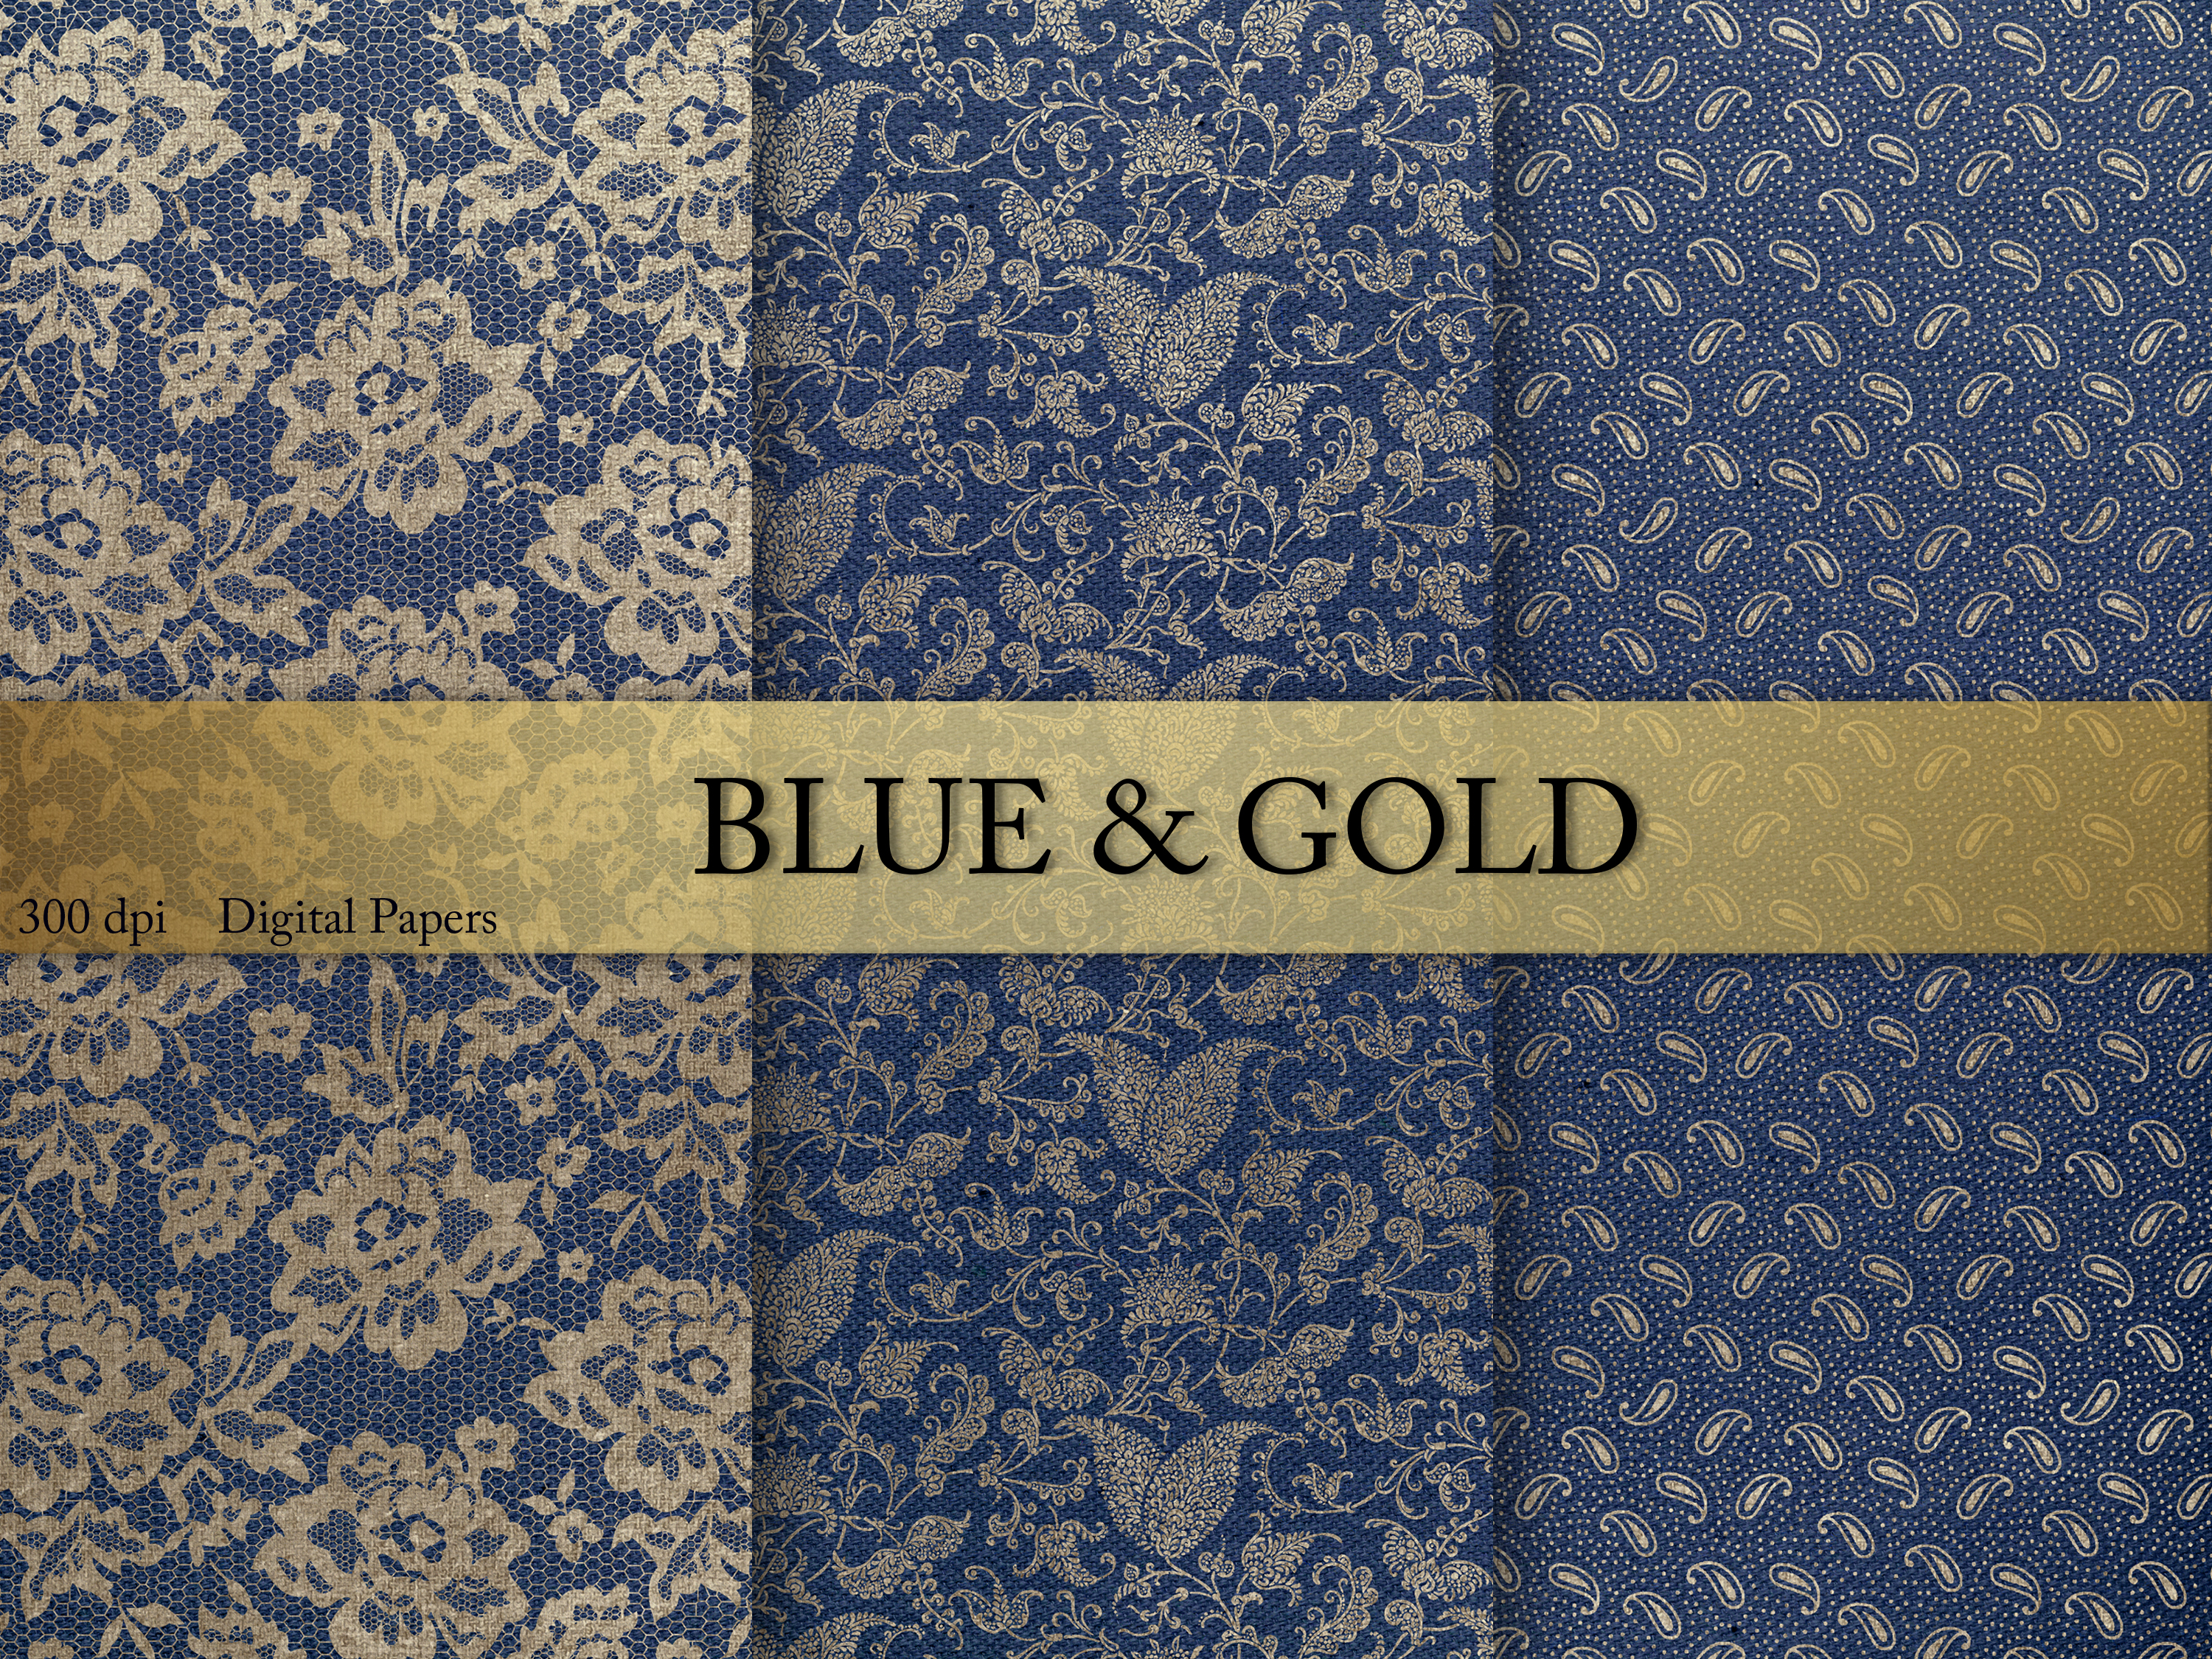 Blue Gold Digital Paper Graphic By Creative Paper Creative